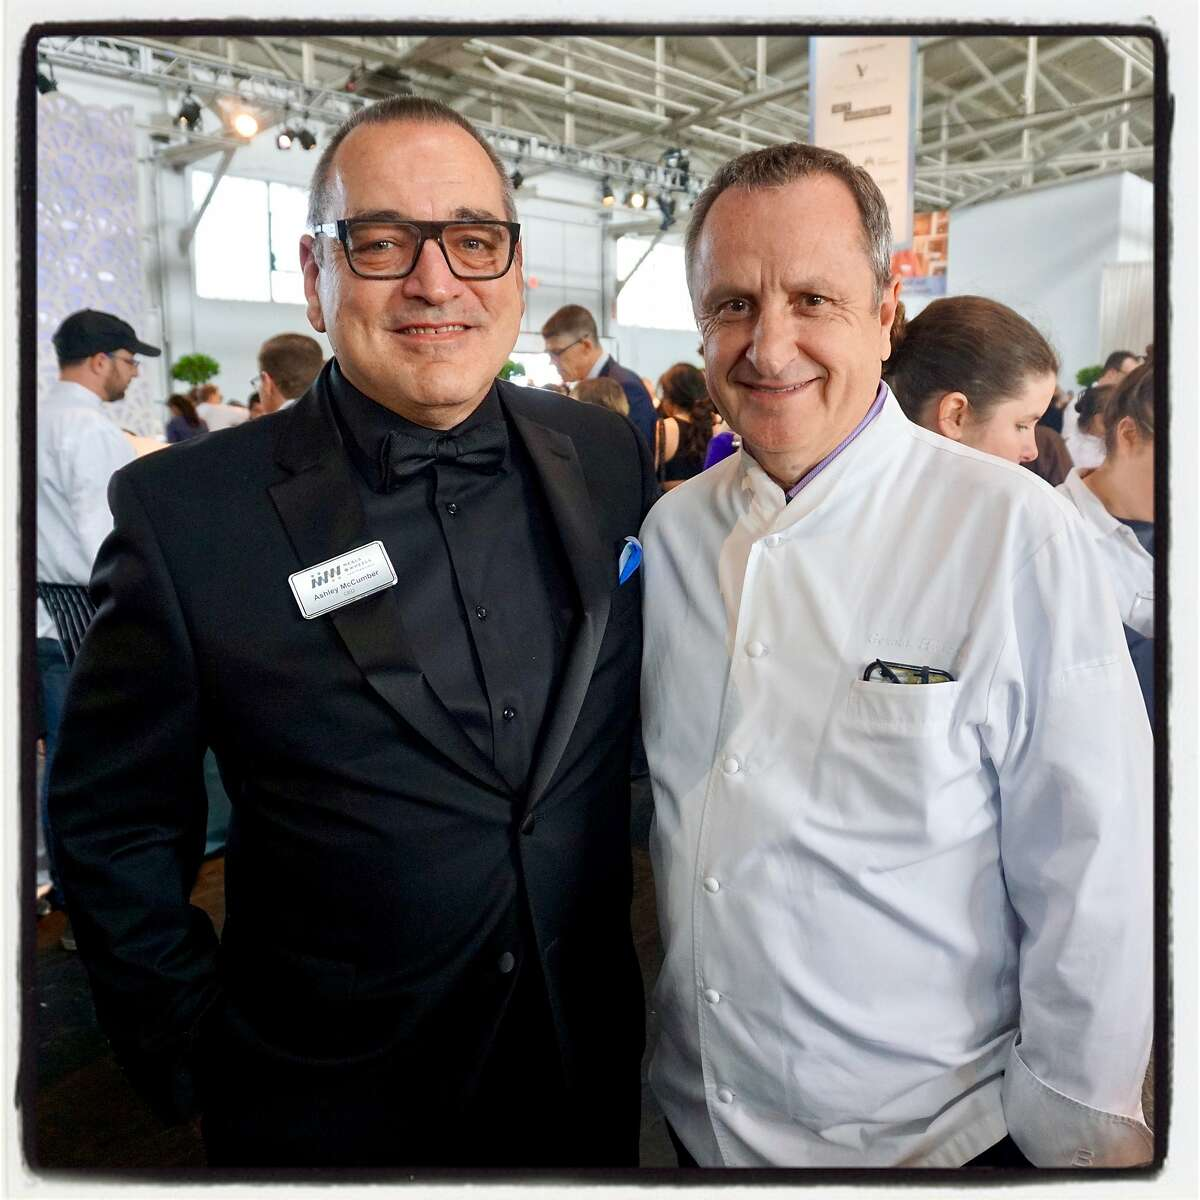 Meals on Wheels CEO Ashley McCumber (left) and Piperade chef Gerald Hirigoyen at the Star Chefs & Vintners Gala. May 20, 2018.